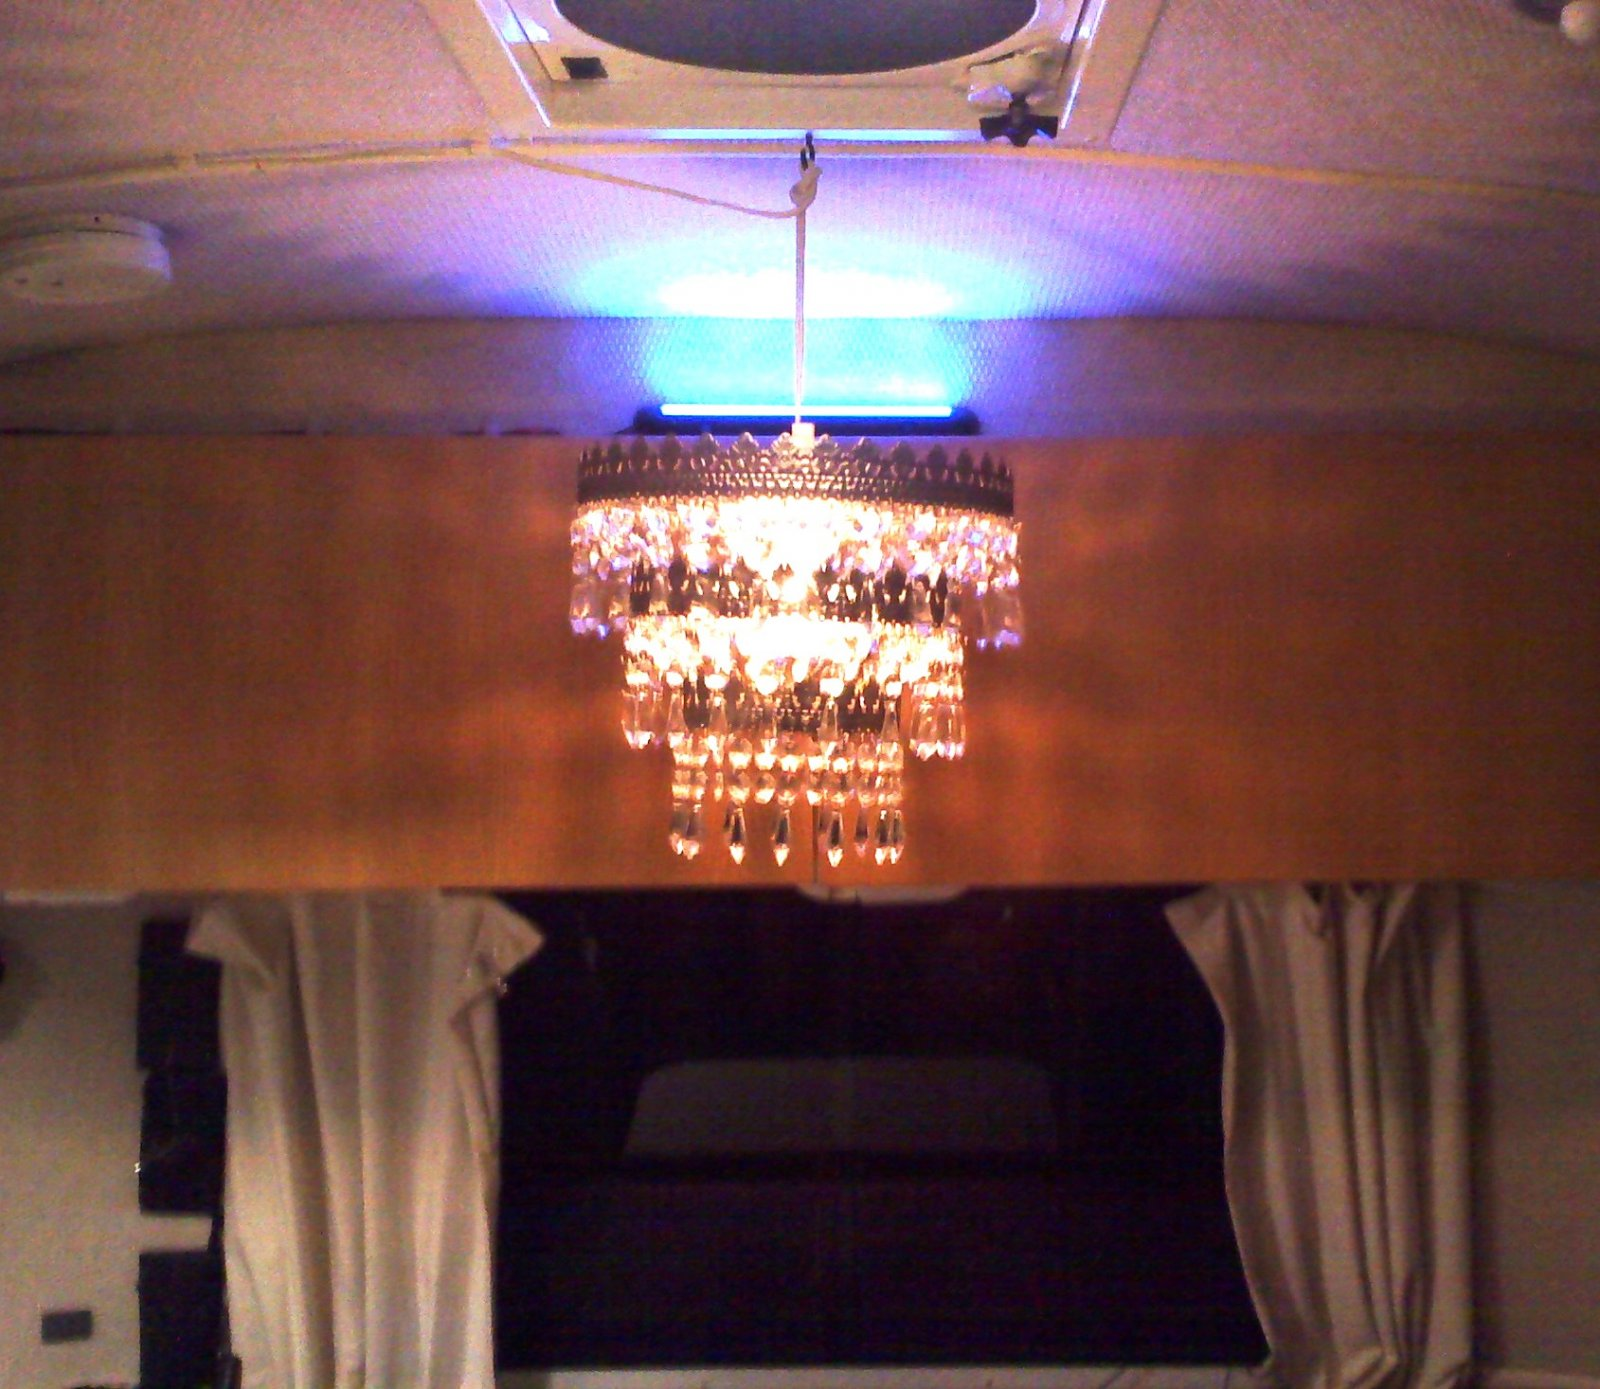 Click image for larger version  Name:Chandelier.jpg Views:106 Size:284.7 KB ID:151666